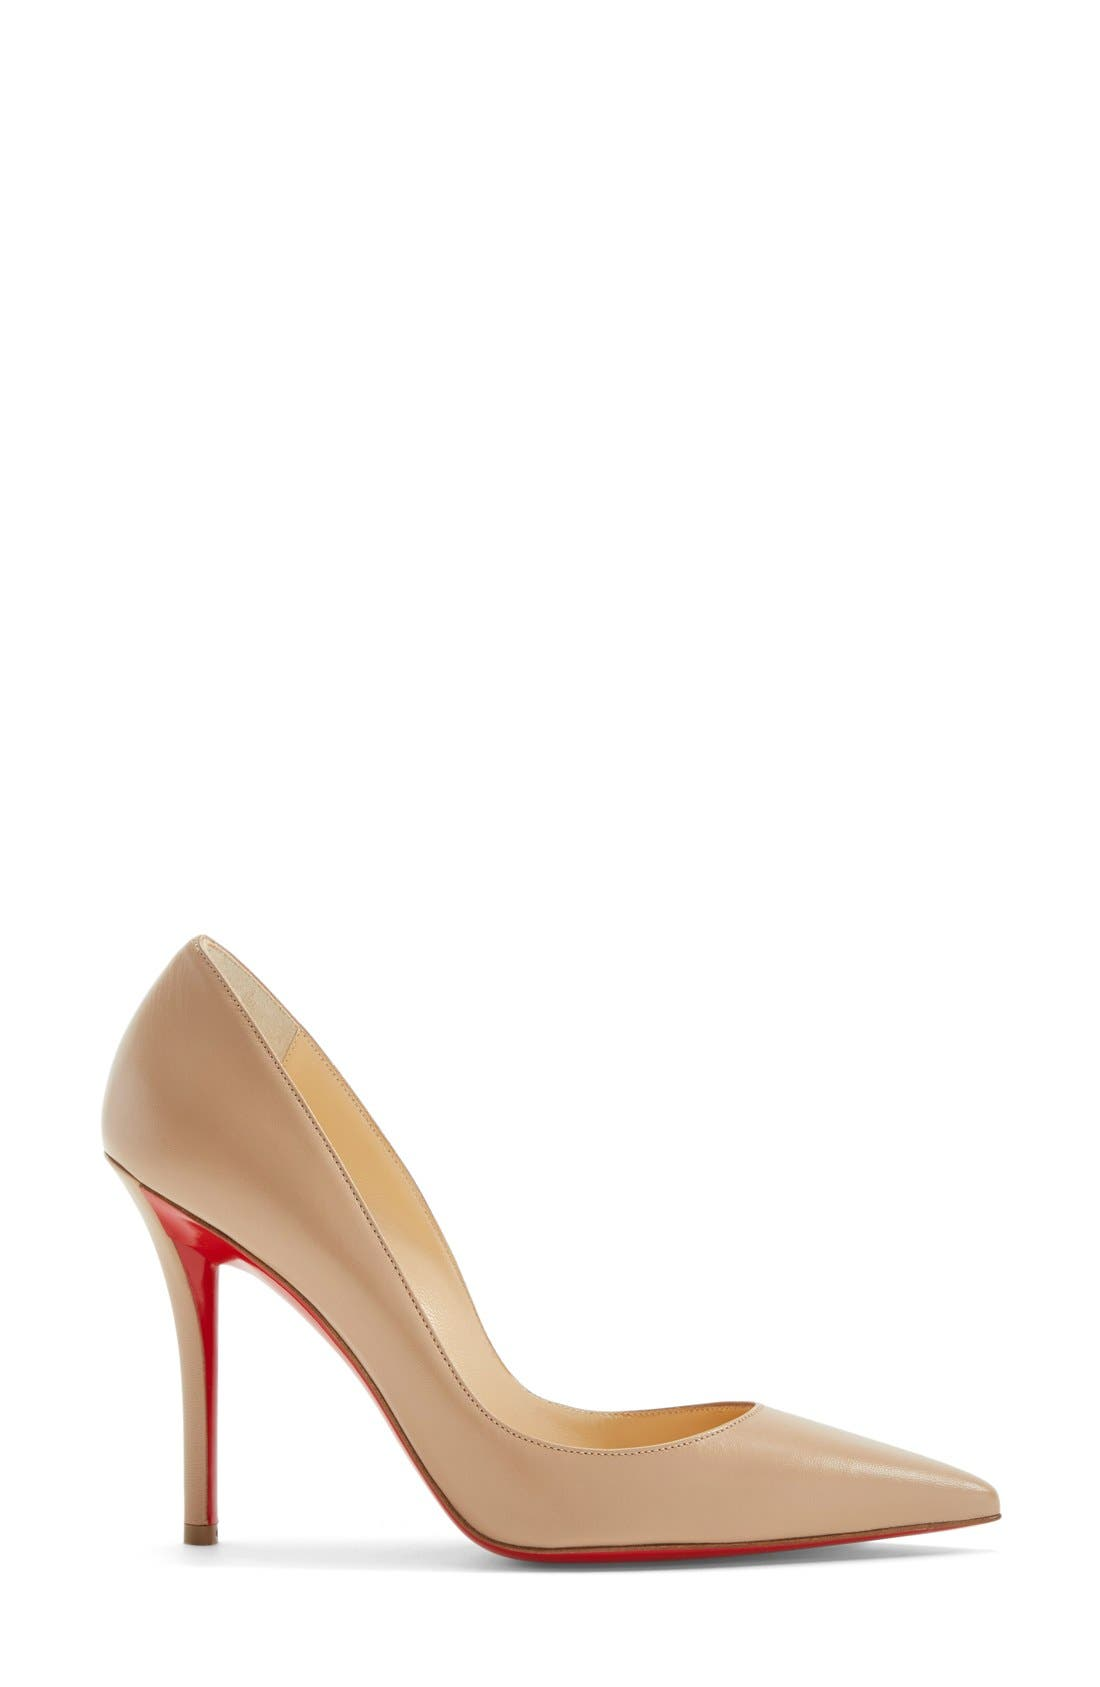 'Apostrophy' Pointy Toe Pump,                             Alternate thumbnail 6, color,